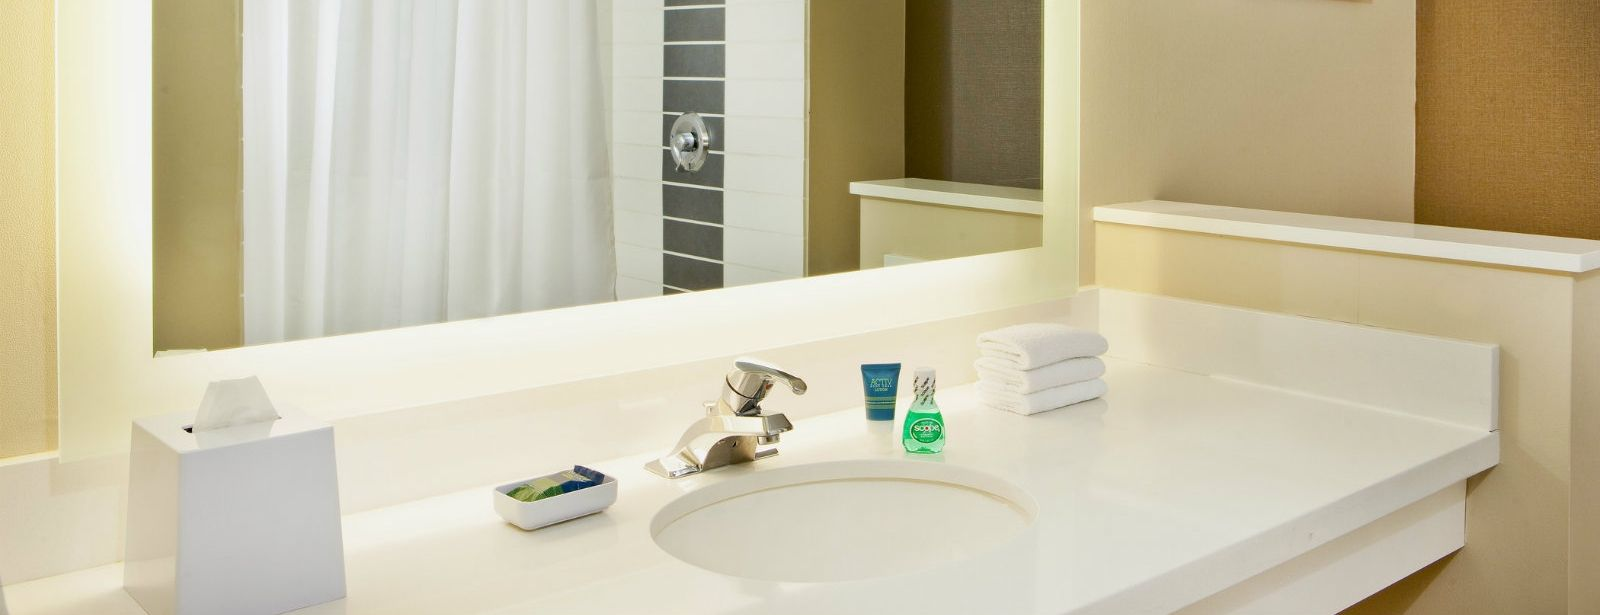 Fargo Accommodations - Accessible Room - Bath